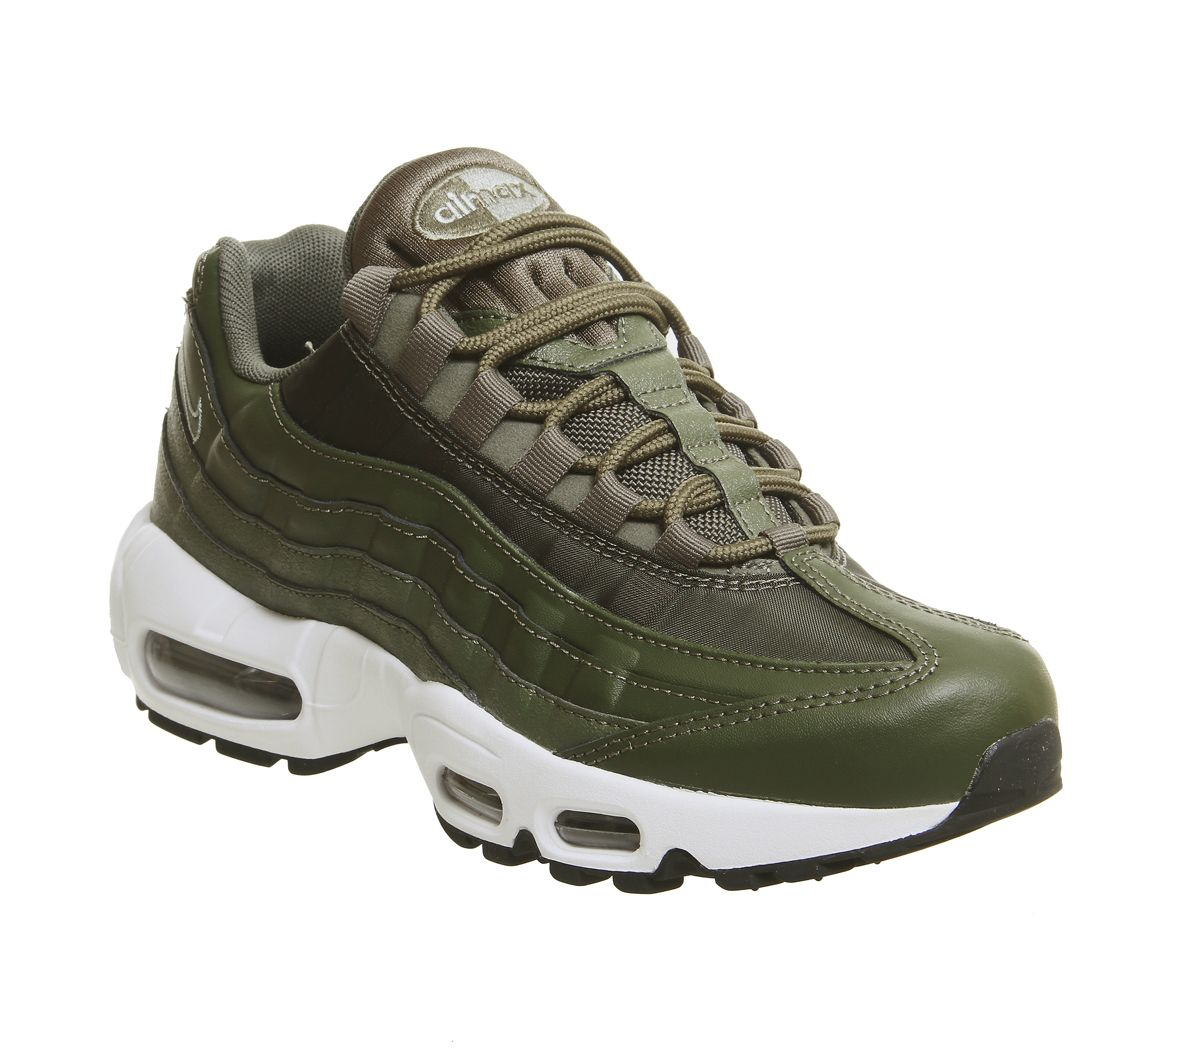 best cheap ad4de b05f2 Nike Air Max 95 Trainers Olive Canvas Mica Green - Hers trainers